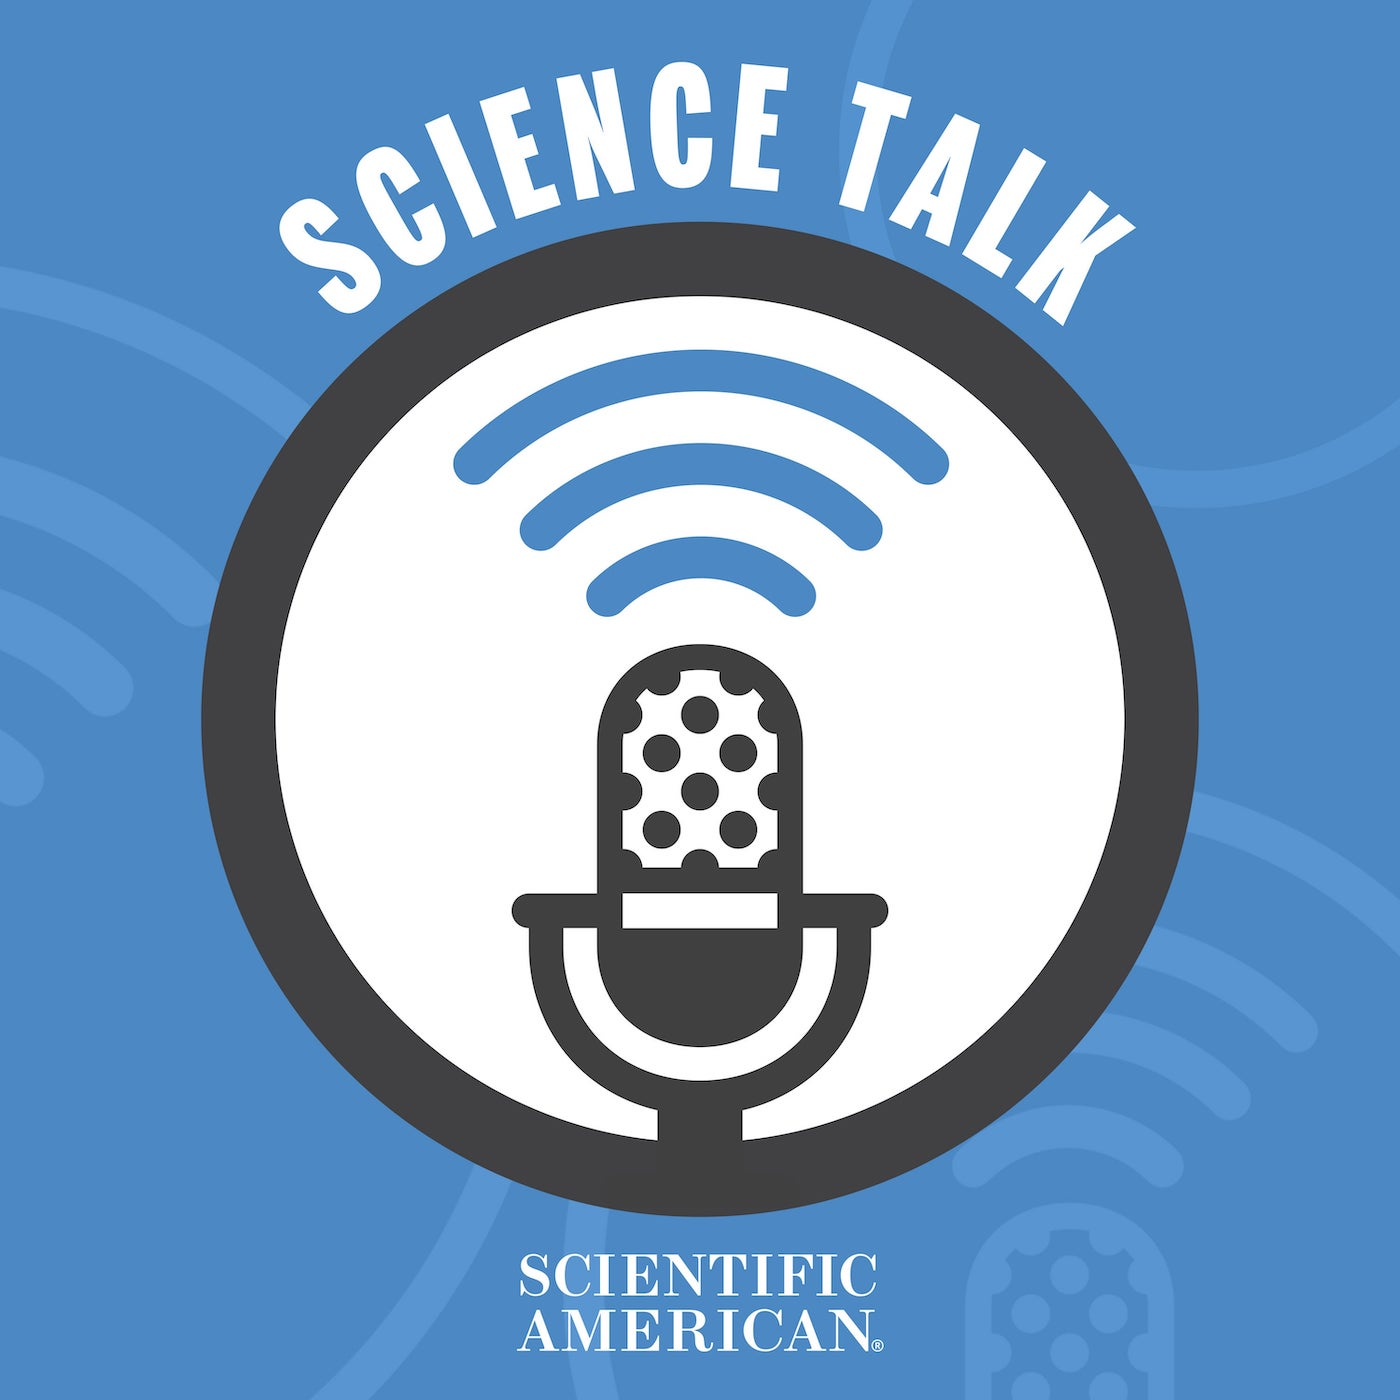 Podcast Cover of Science Talk